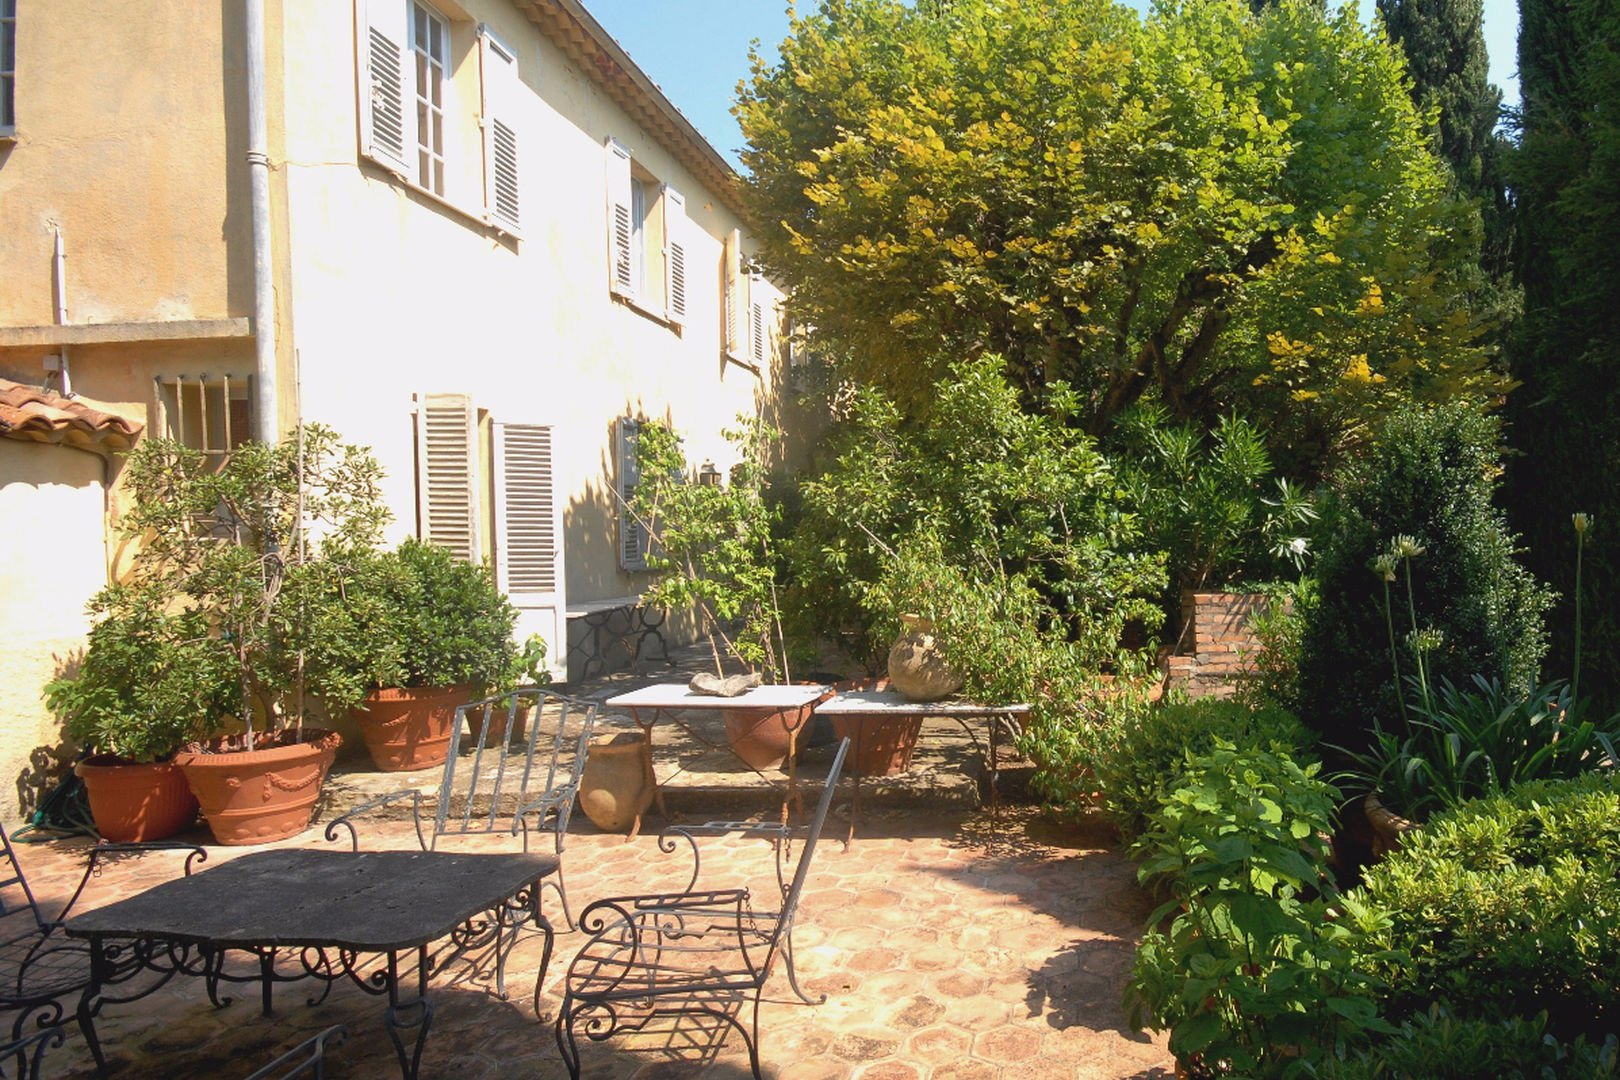 Authentique old farmhouse in Grasse walking distance to shops